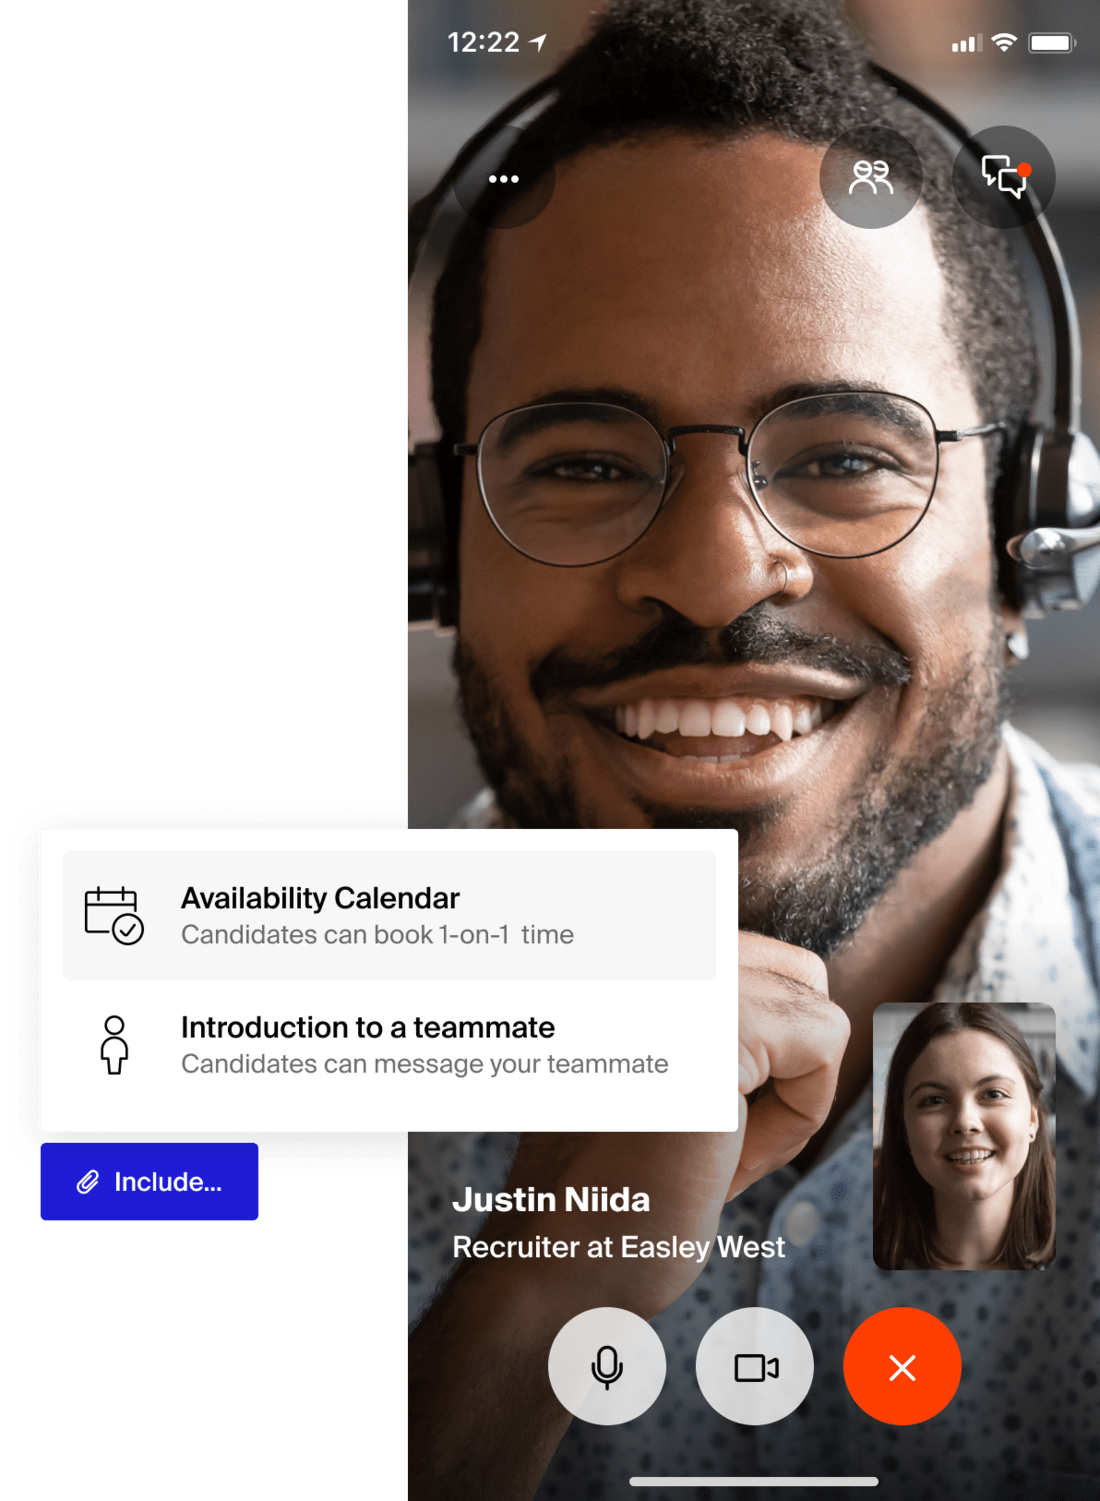 Recruiters can easily send candidates their calendar availability on Handshake to book virtual info chats and one-on-one time to speak about open jobs and internships at their company.